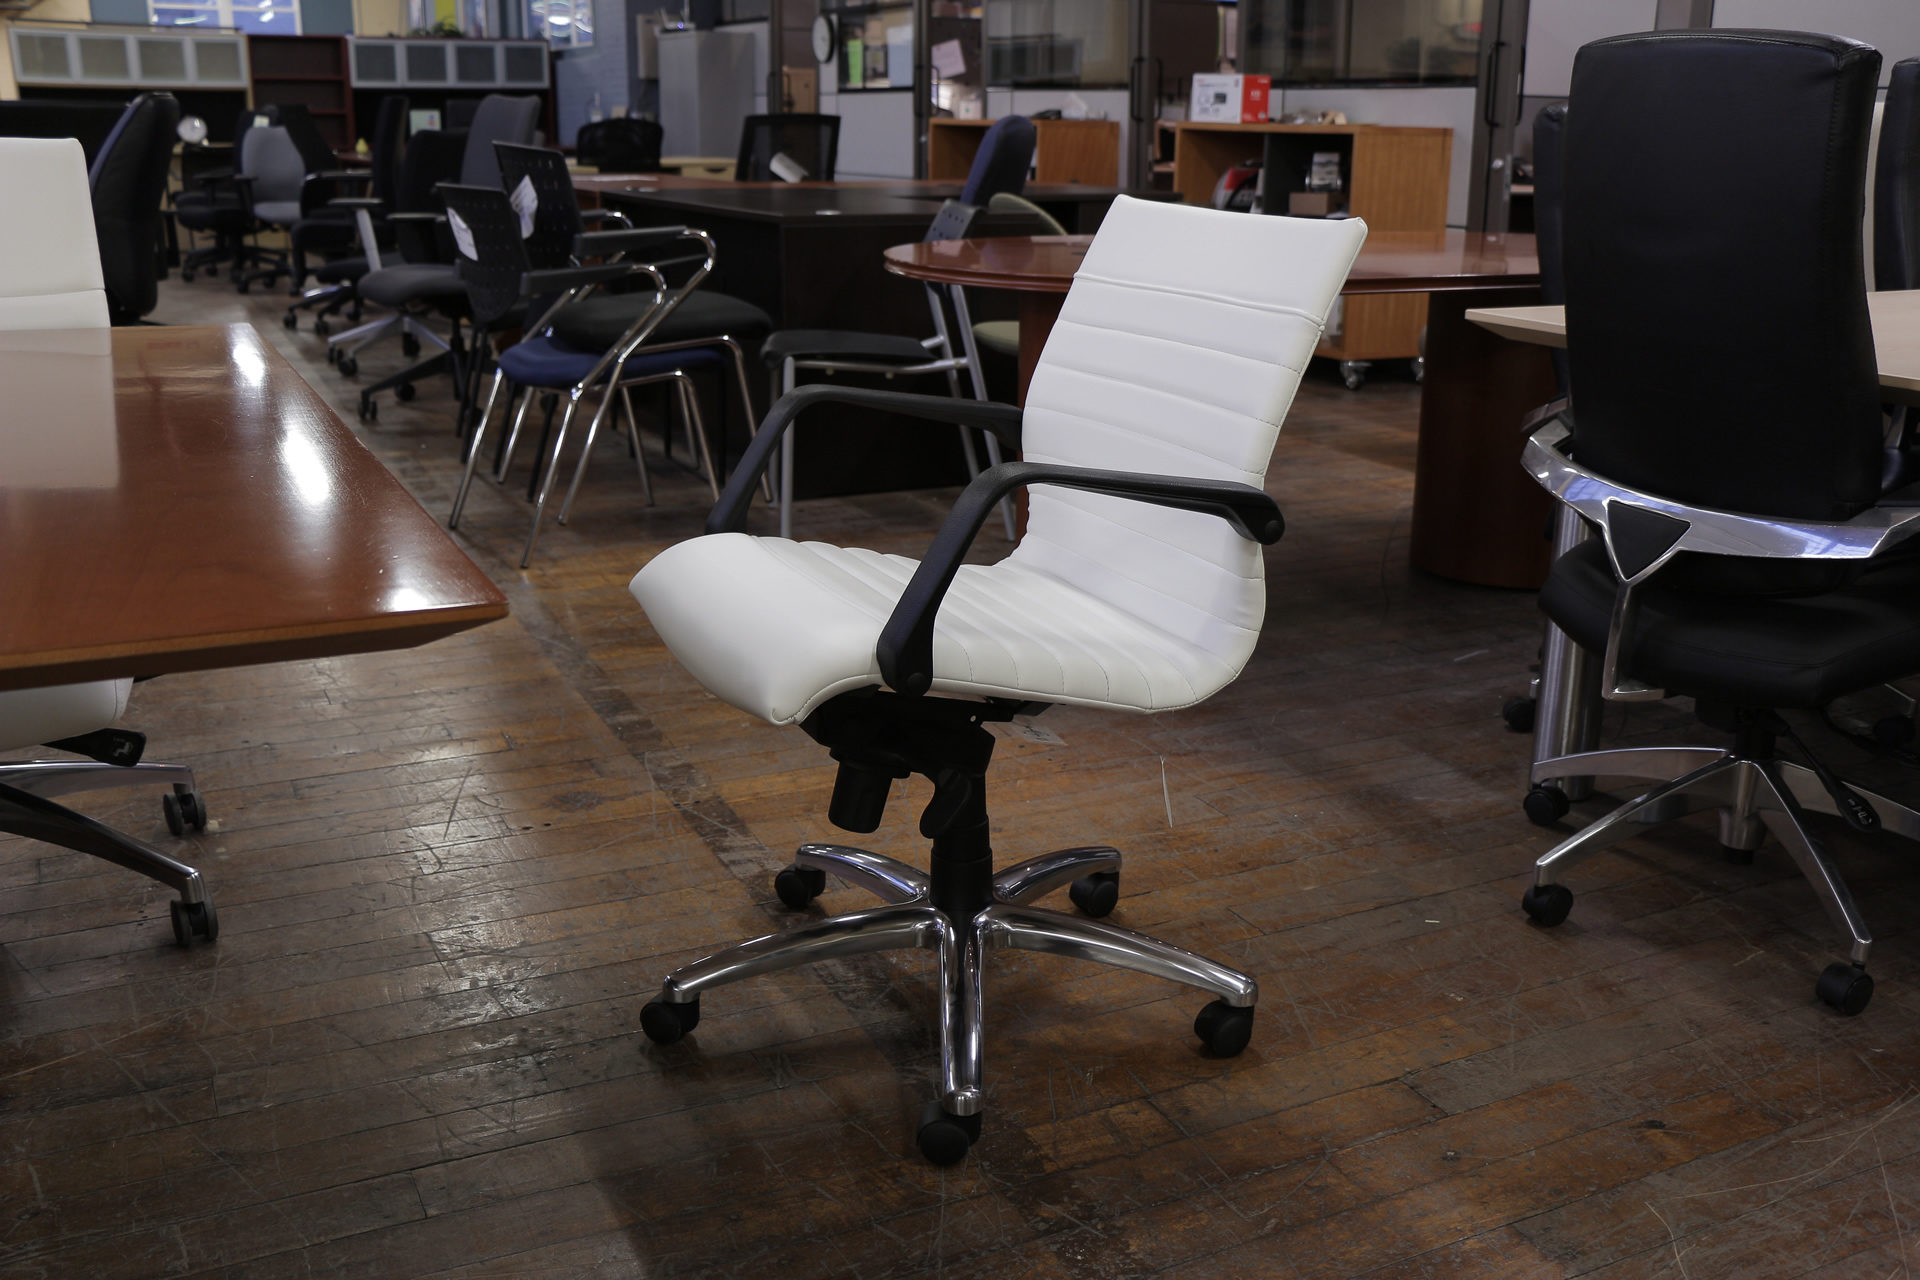 peartreeofficefurniture_peartreeofficefurniture_peartreeofficefurniture_img_9576.jpg